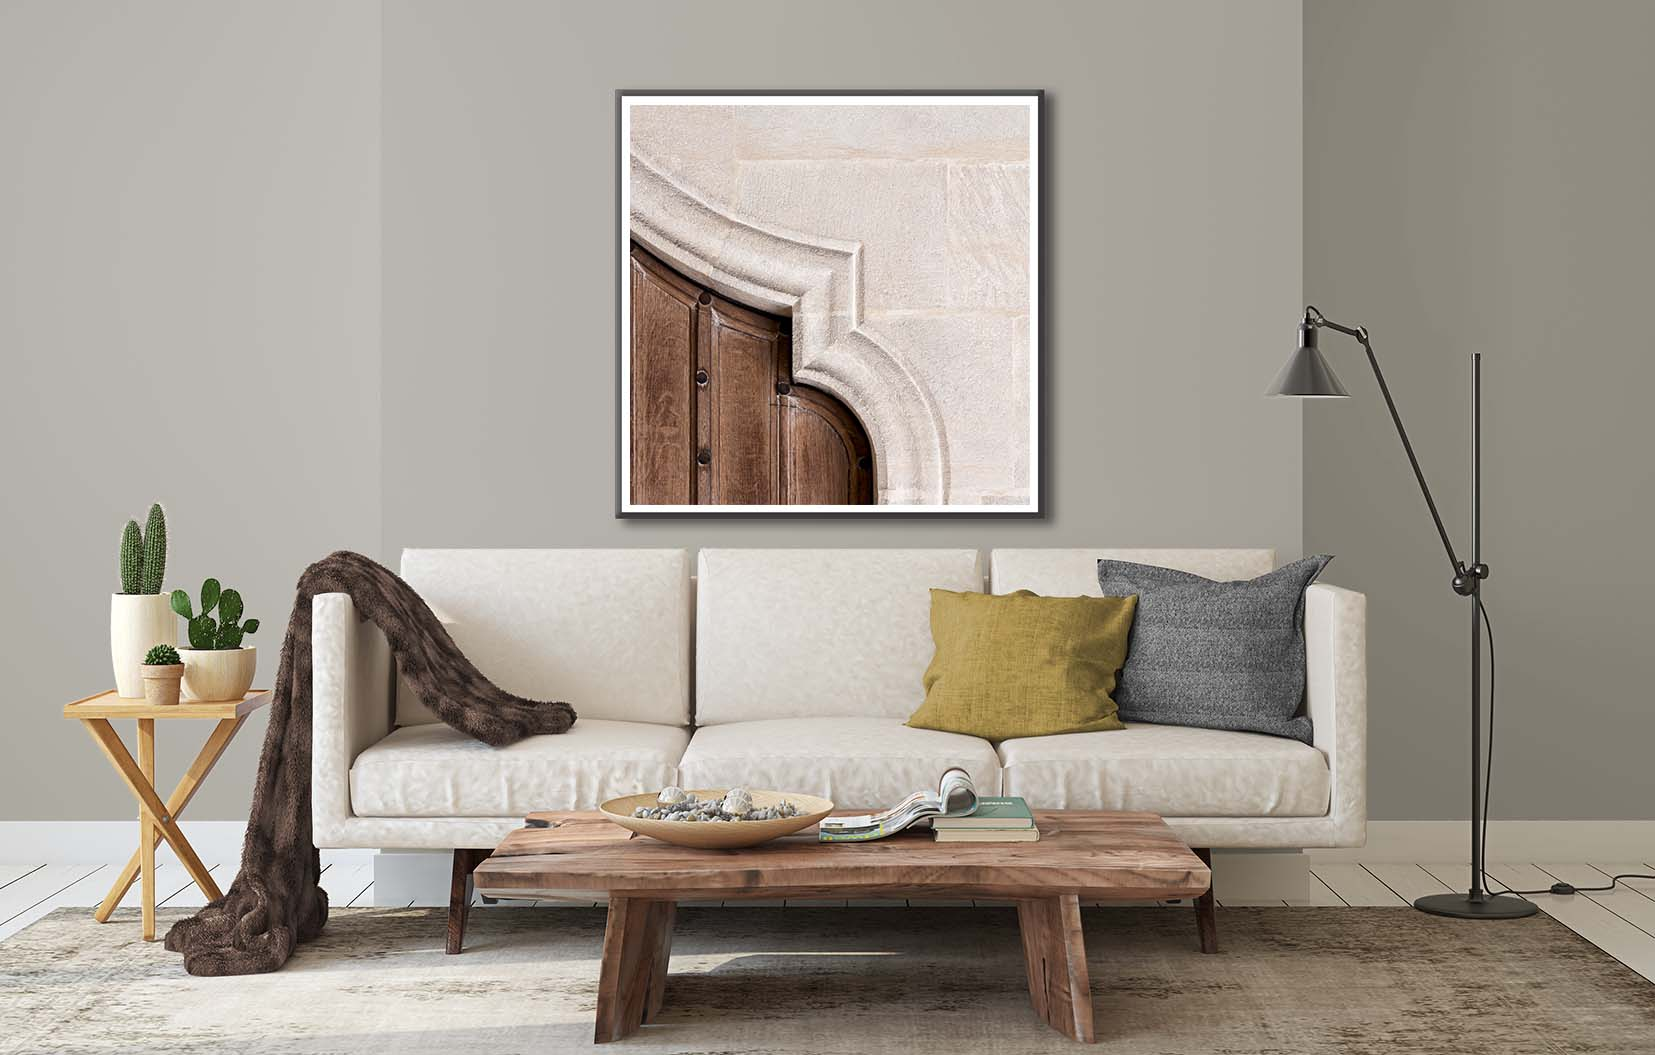 Stonecraft IX. Abstract studies of stone and stonework. Limited edition photographic prints by fine art photographer Paul Coghlin FBIPP.